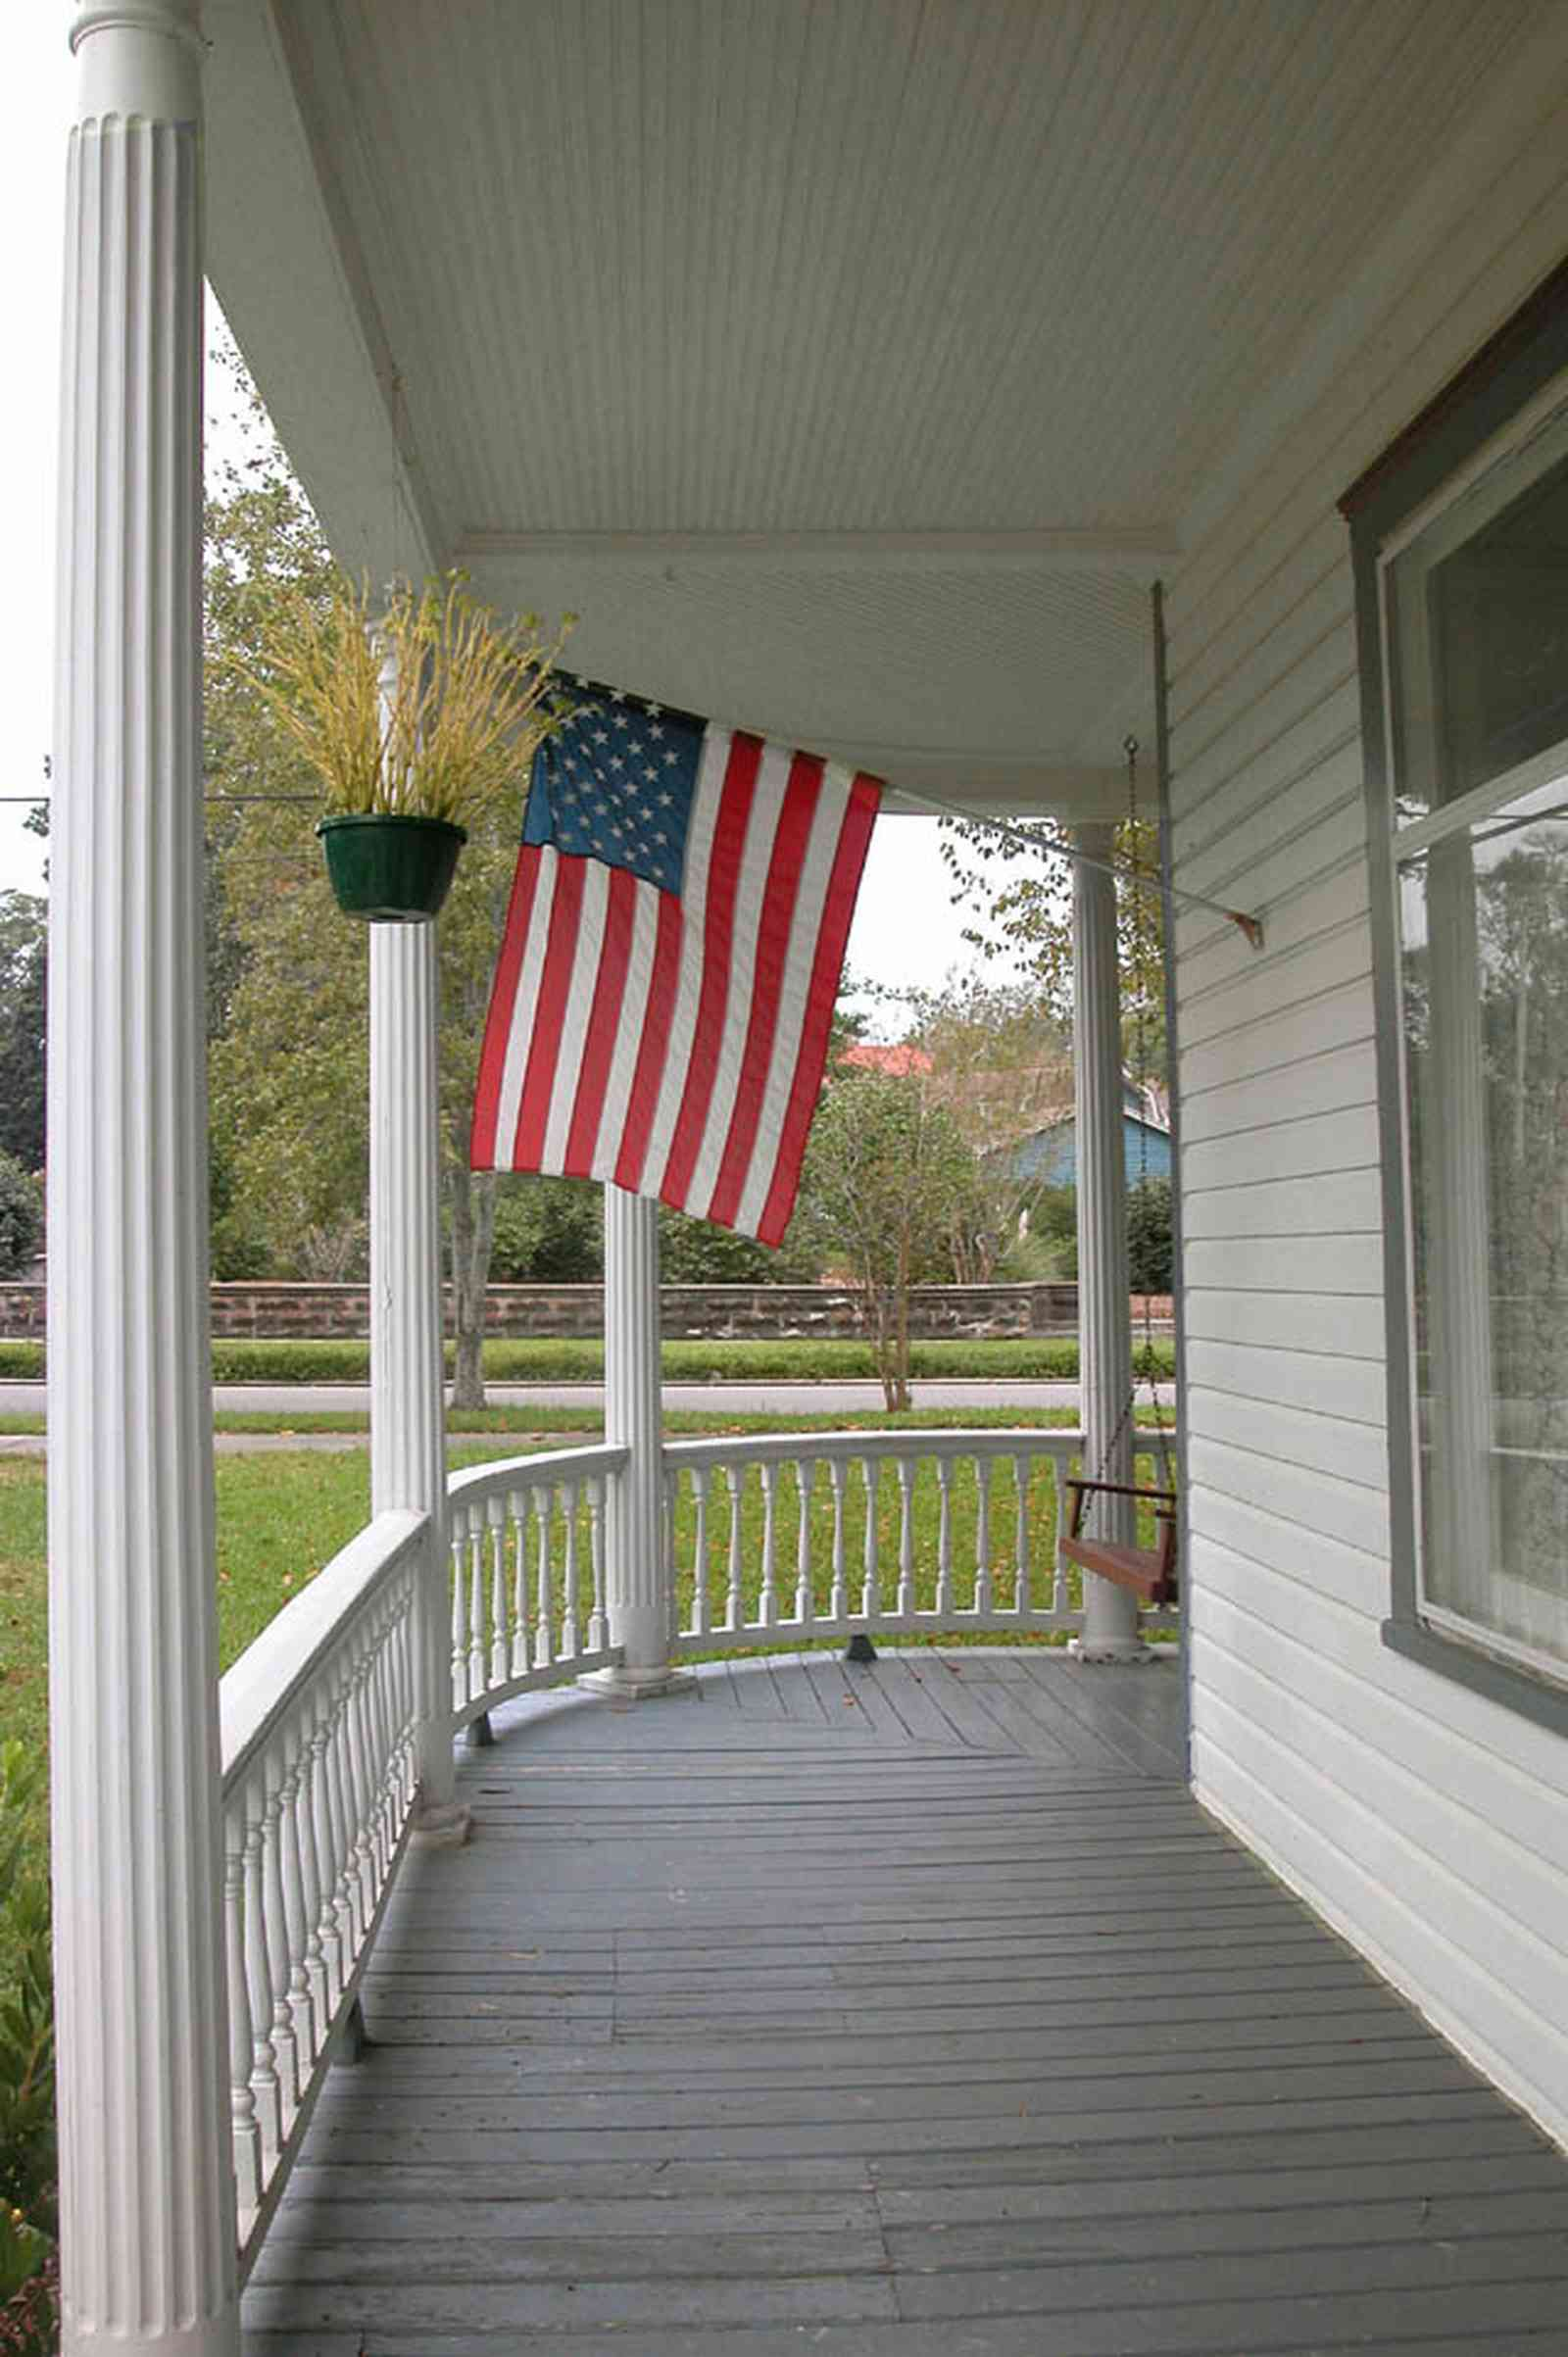 North-Hill:-52-West-Gonzalez-Street_04.jpg:  victorian front porch, queen anne style, american flag, curved railing